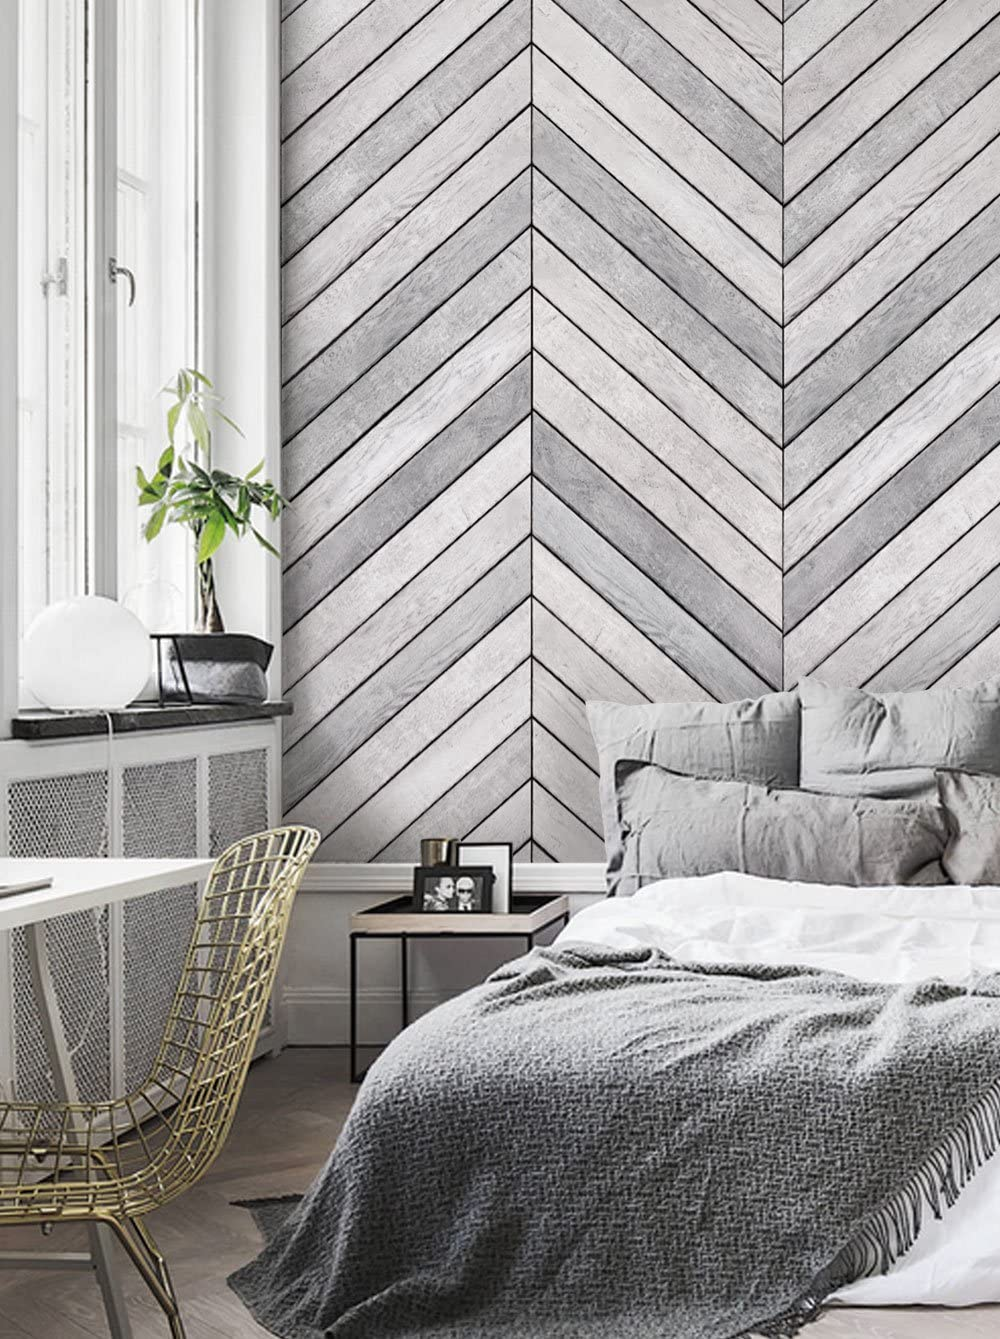 Chevron Grey White Wood Accent Mural Wall Art Wallpaper Peel And Stick By Simple Shapes 2 Sheet Pack 2ft X 8ft